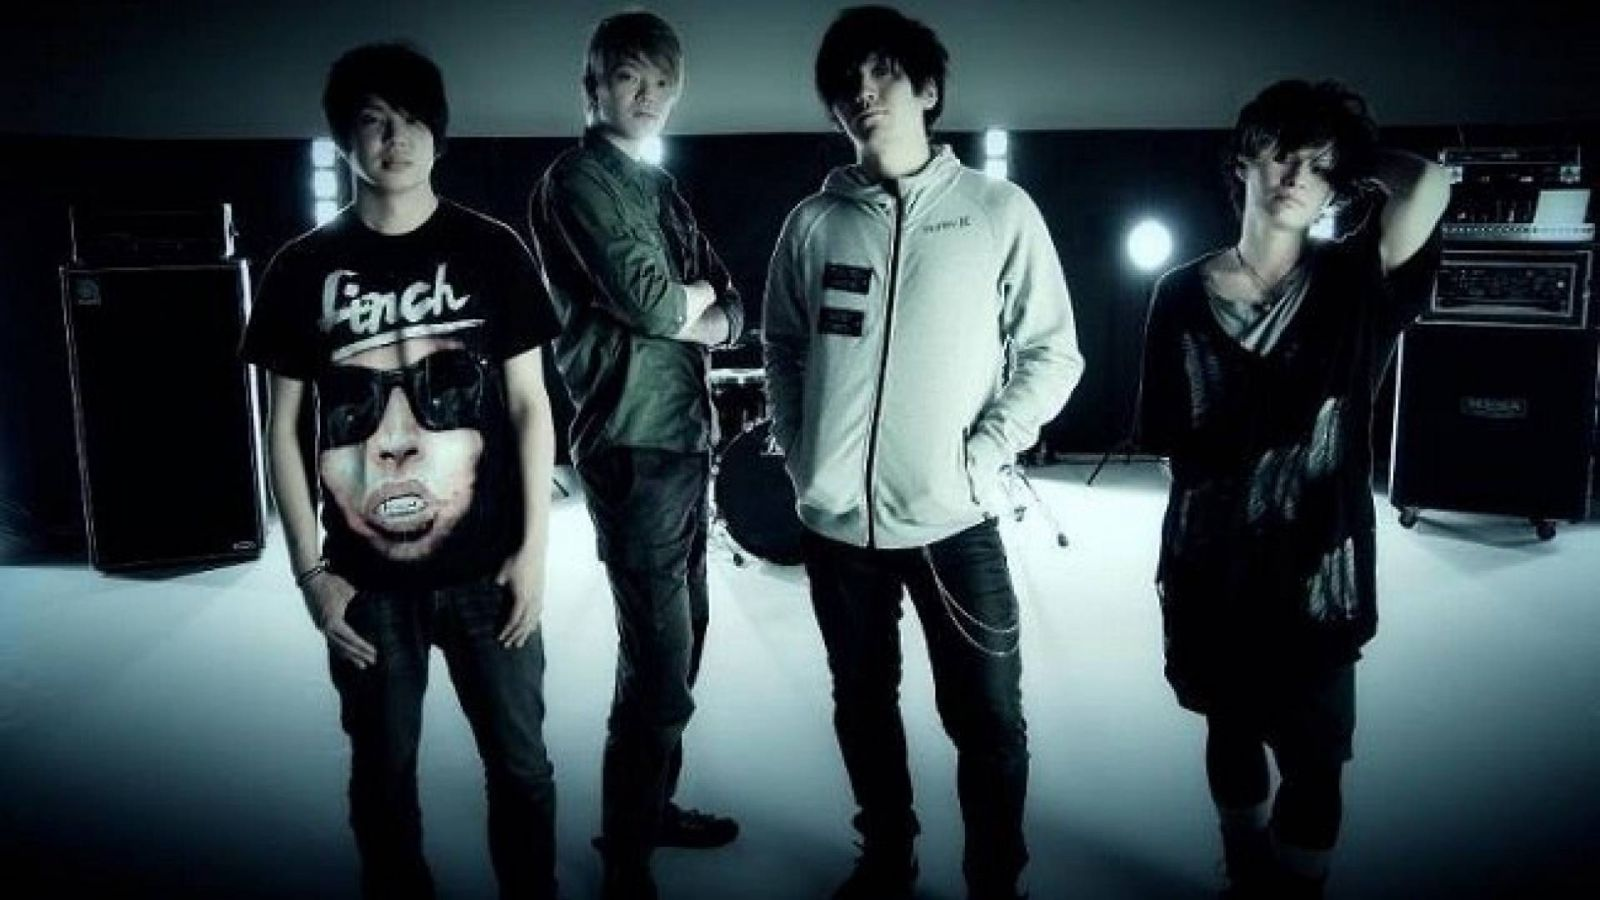 Silhouette from the Skylit © Silhouette from the Skylit